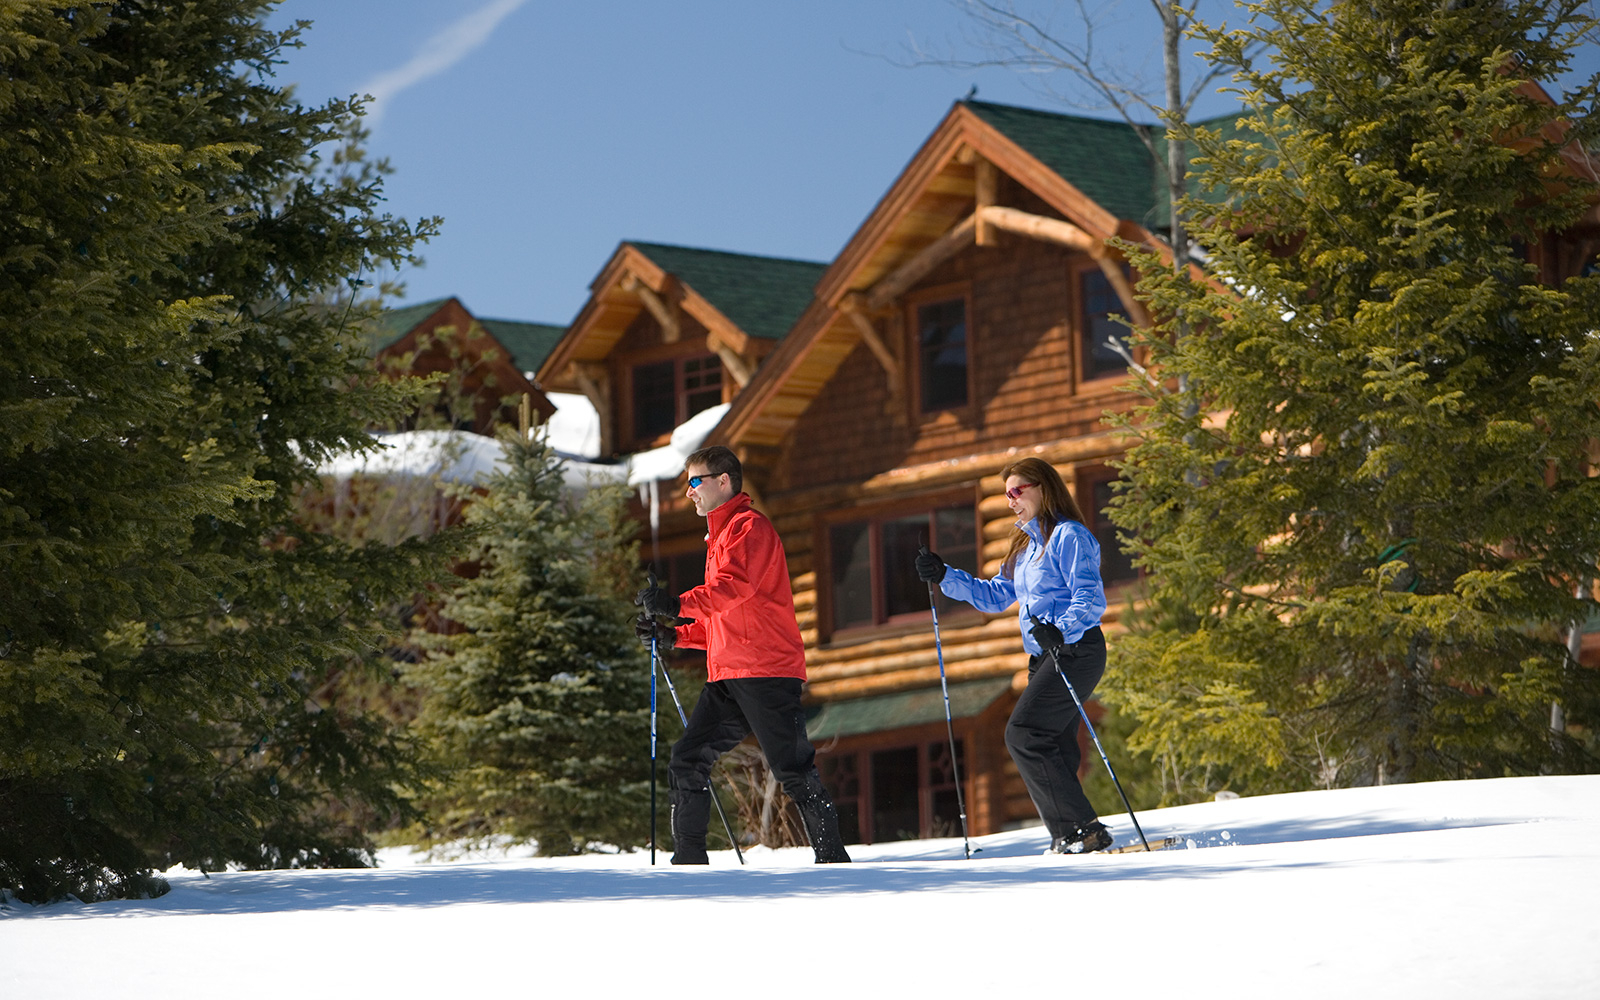 No. 5 Whiteface Lodge, New York